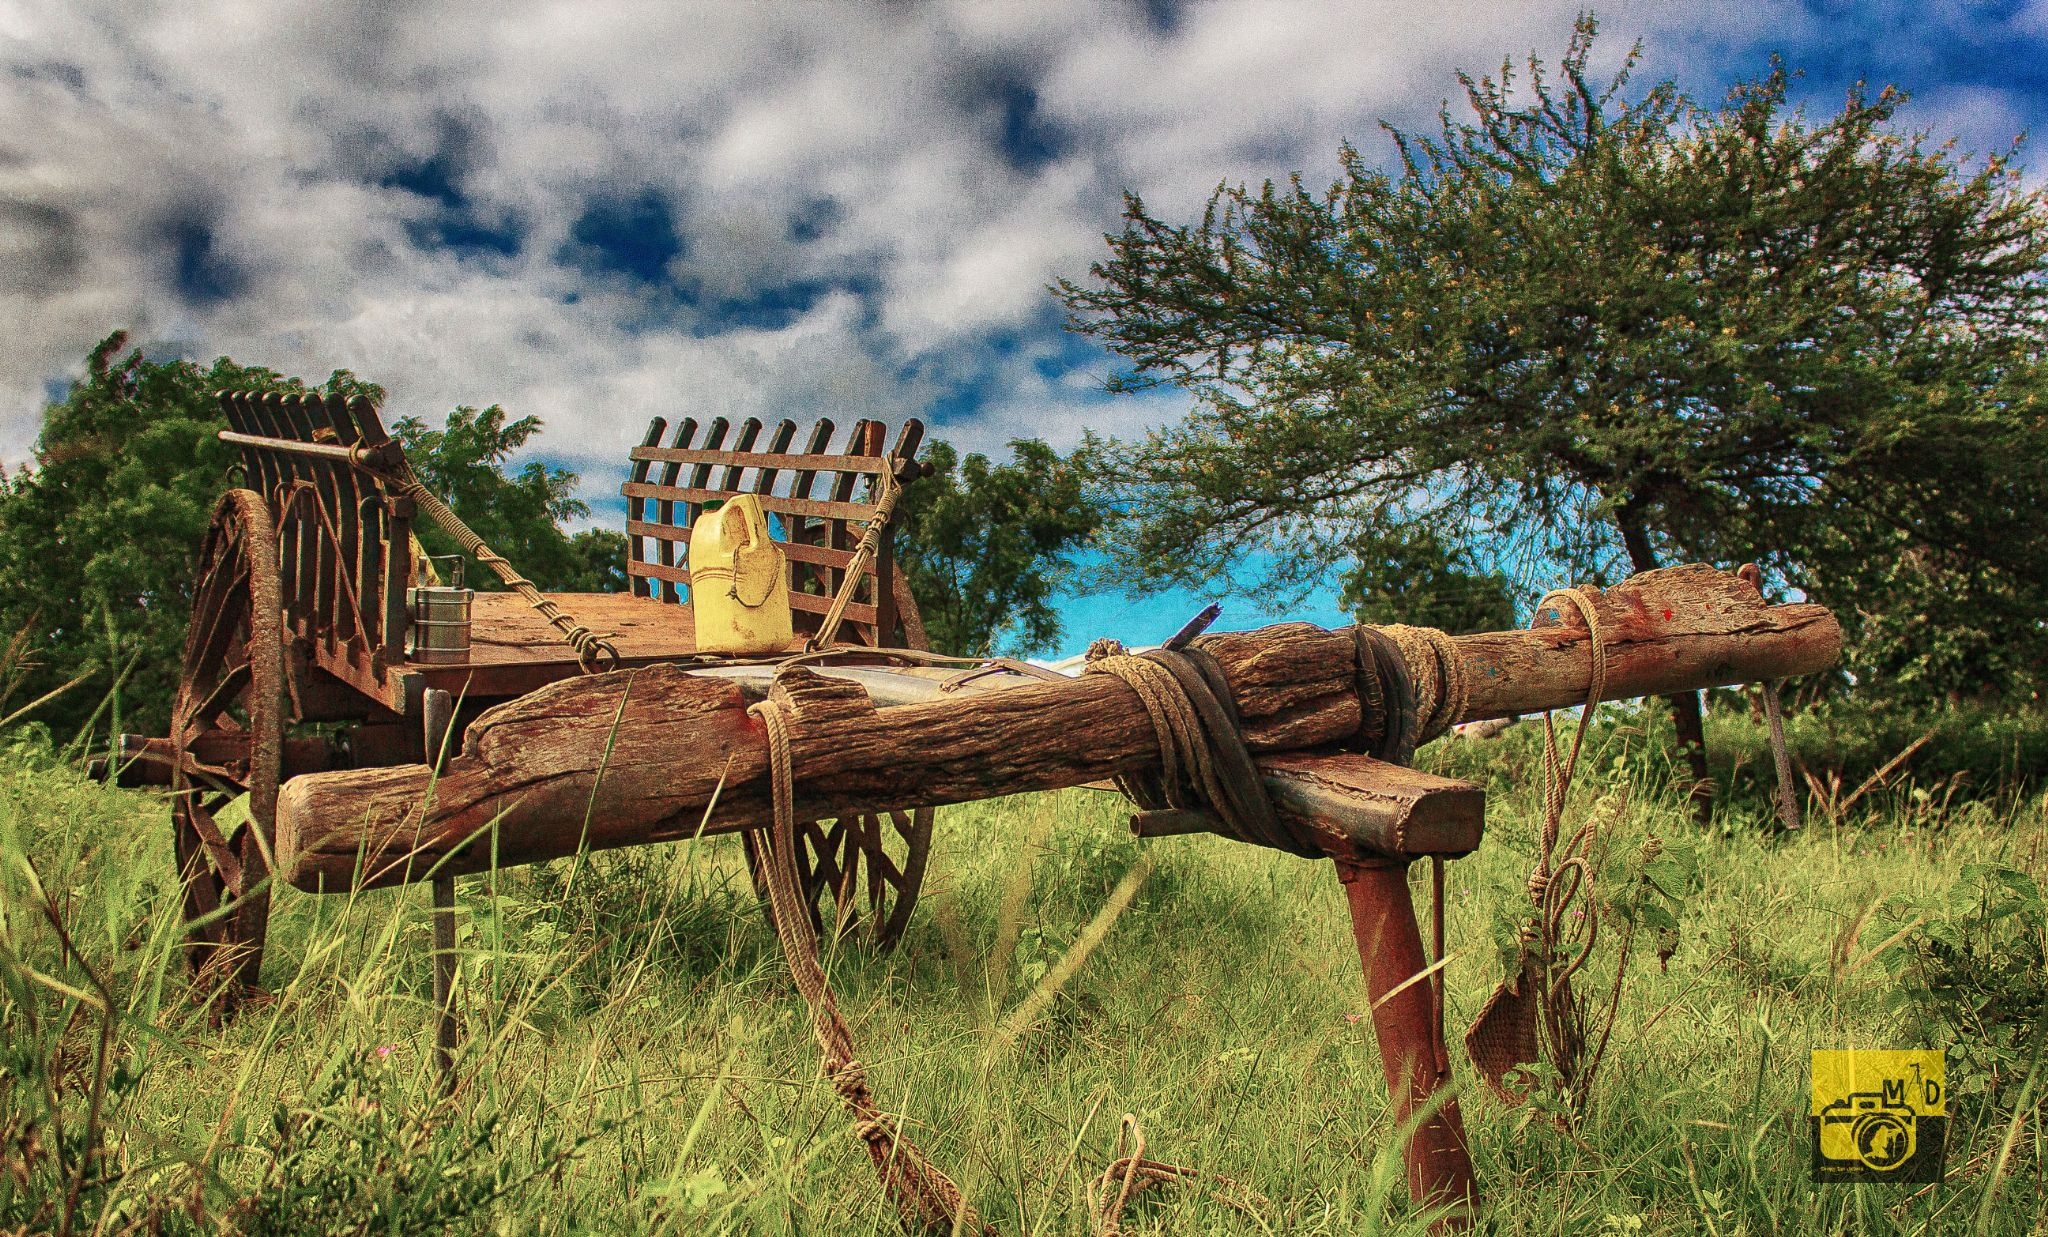 High Dynamic Range (HDR) Image of a bullock cart ------ by arindam dhar